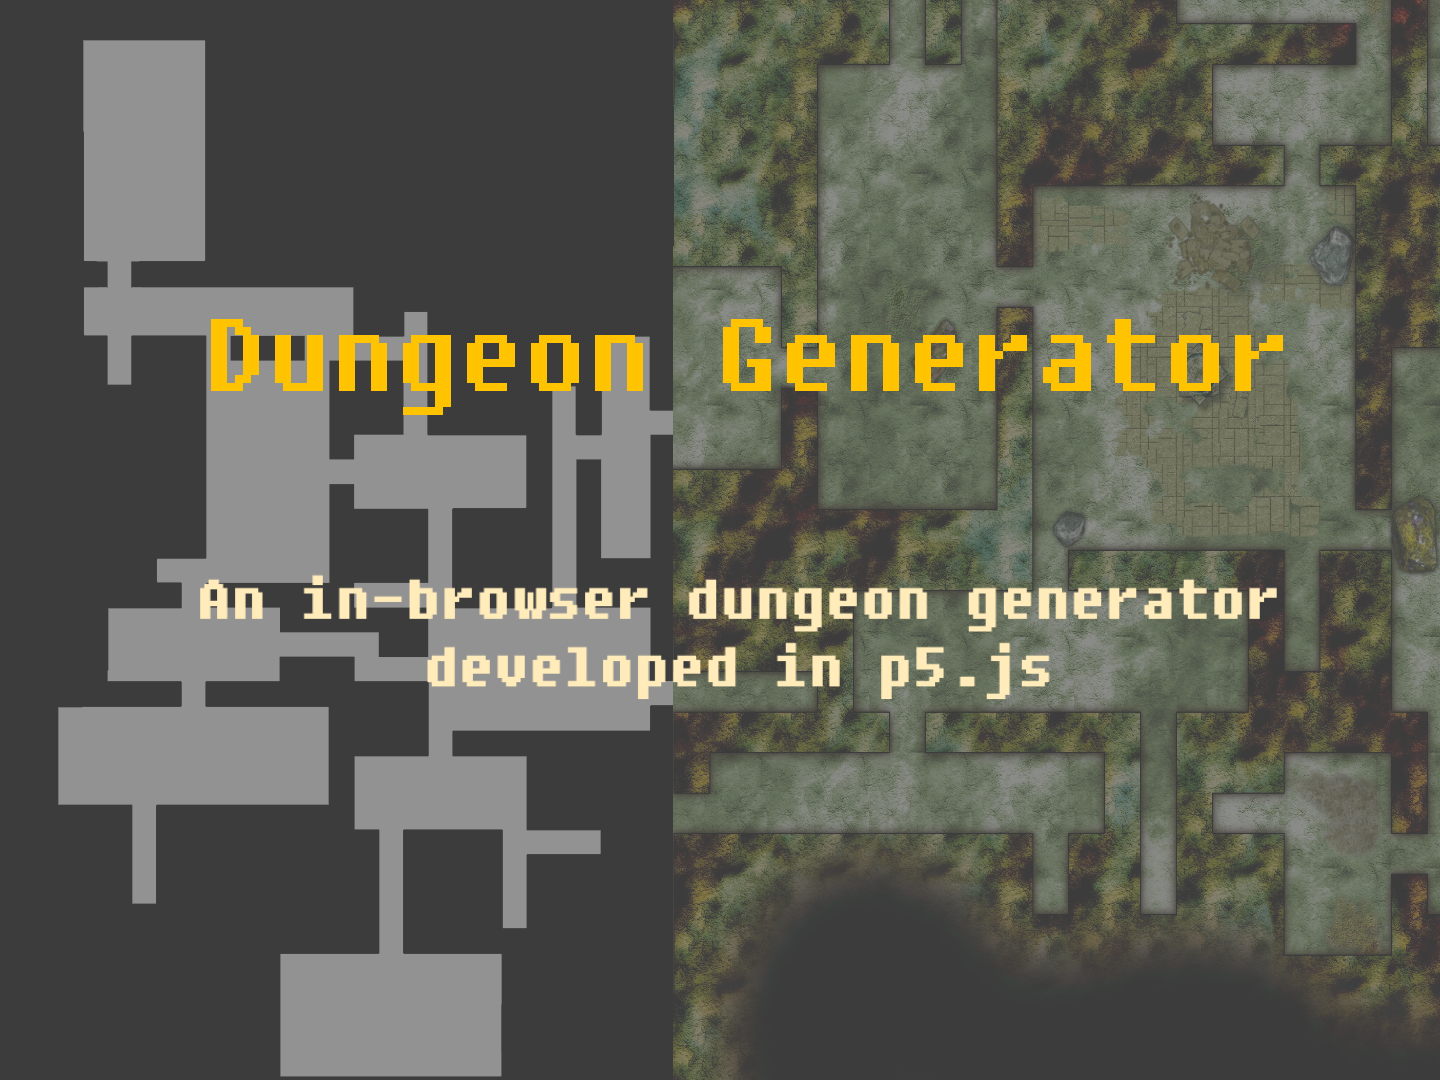 Dungeon cover